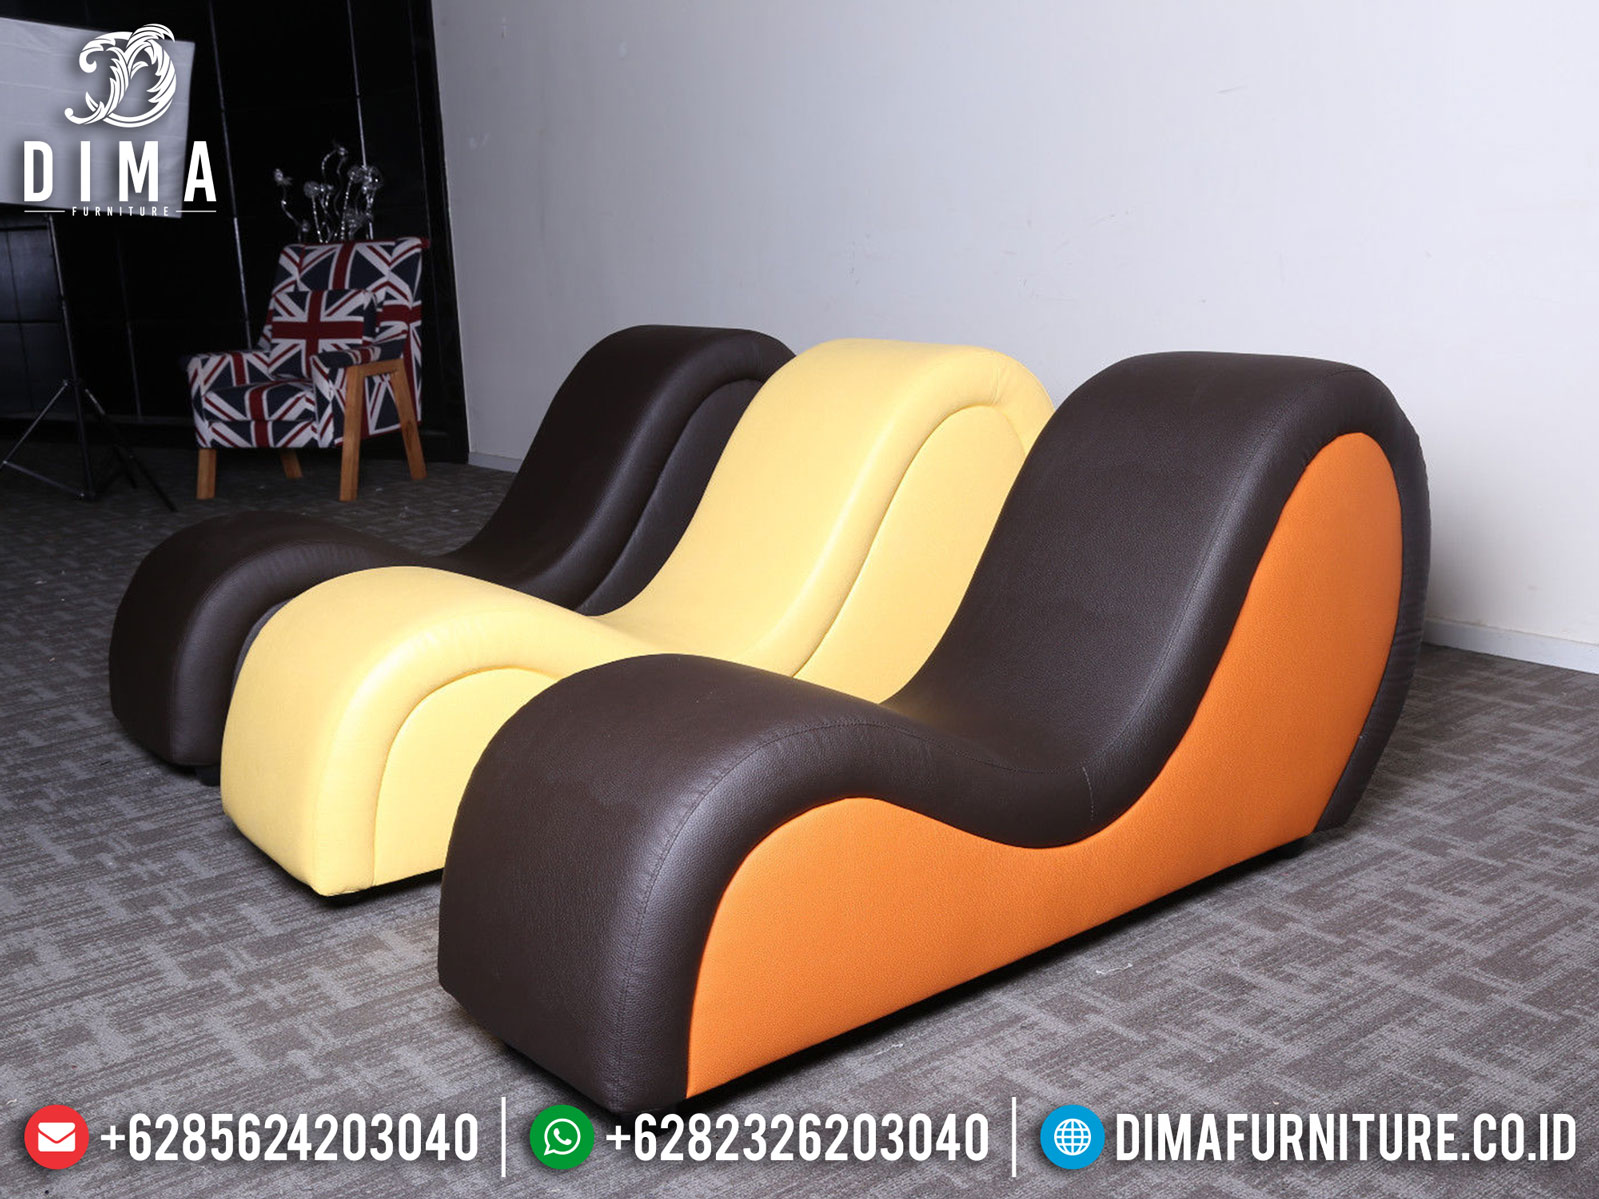 New Model Sofa Tantra Minimalis Kamasutra Education Tools Seat ST-1079